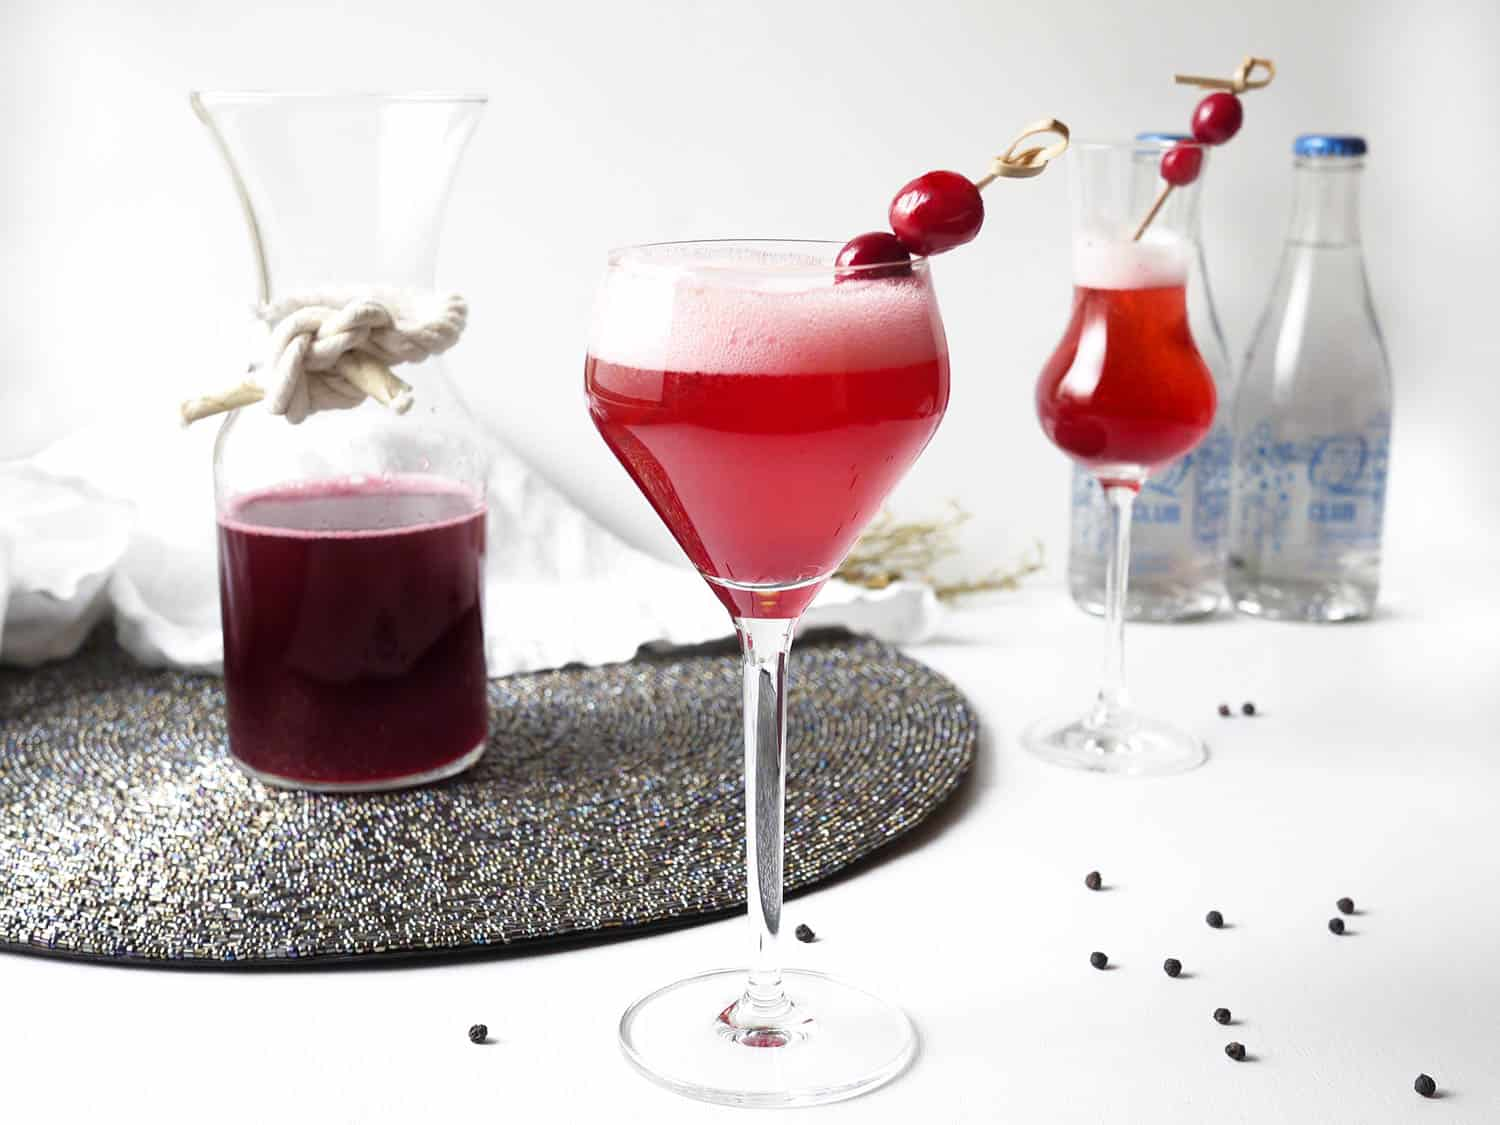 Flavourful cranberry cocktail